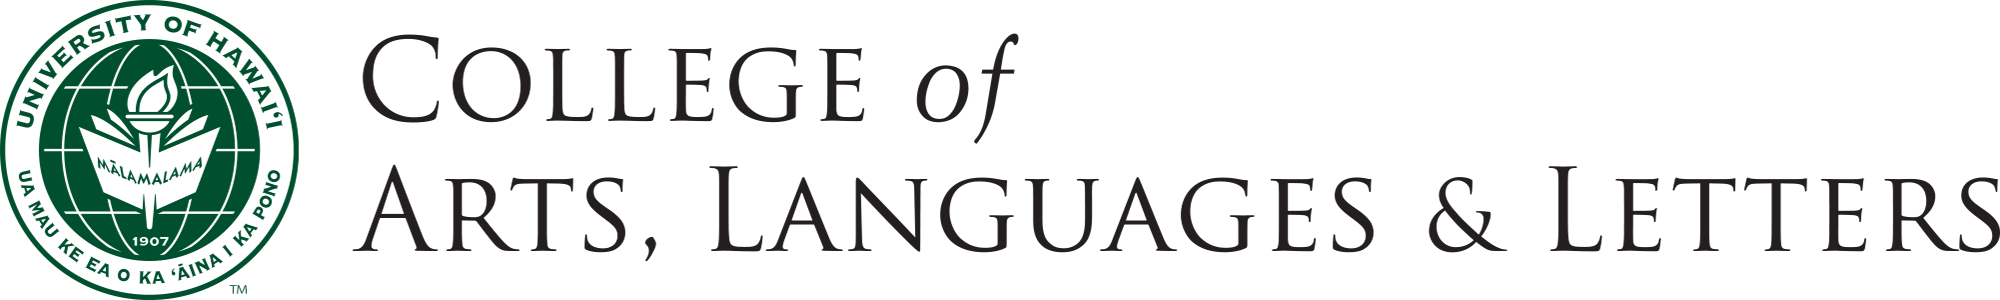 College of Arts, Languages & Letters